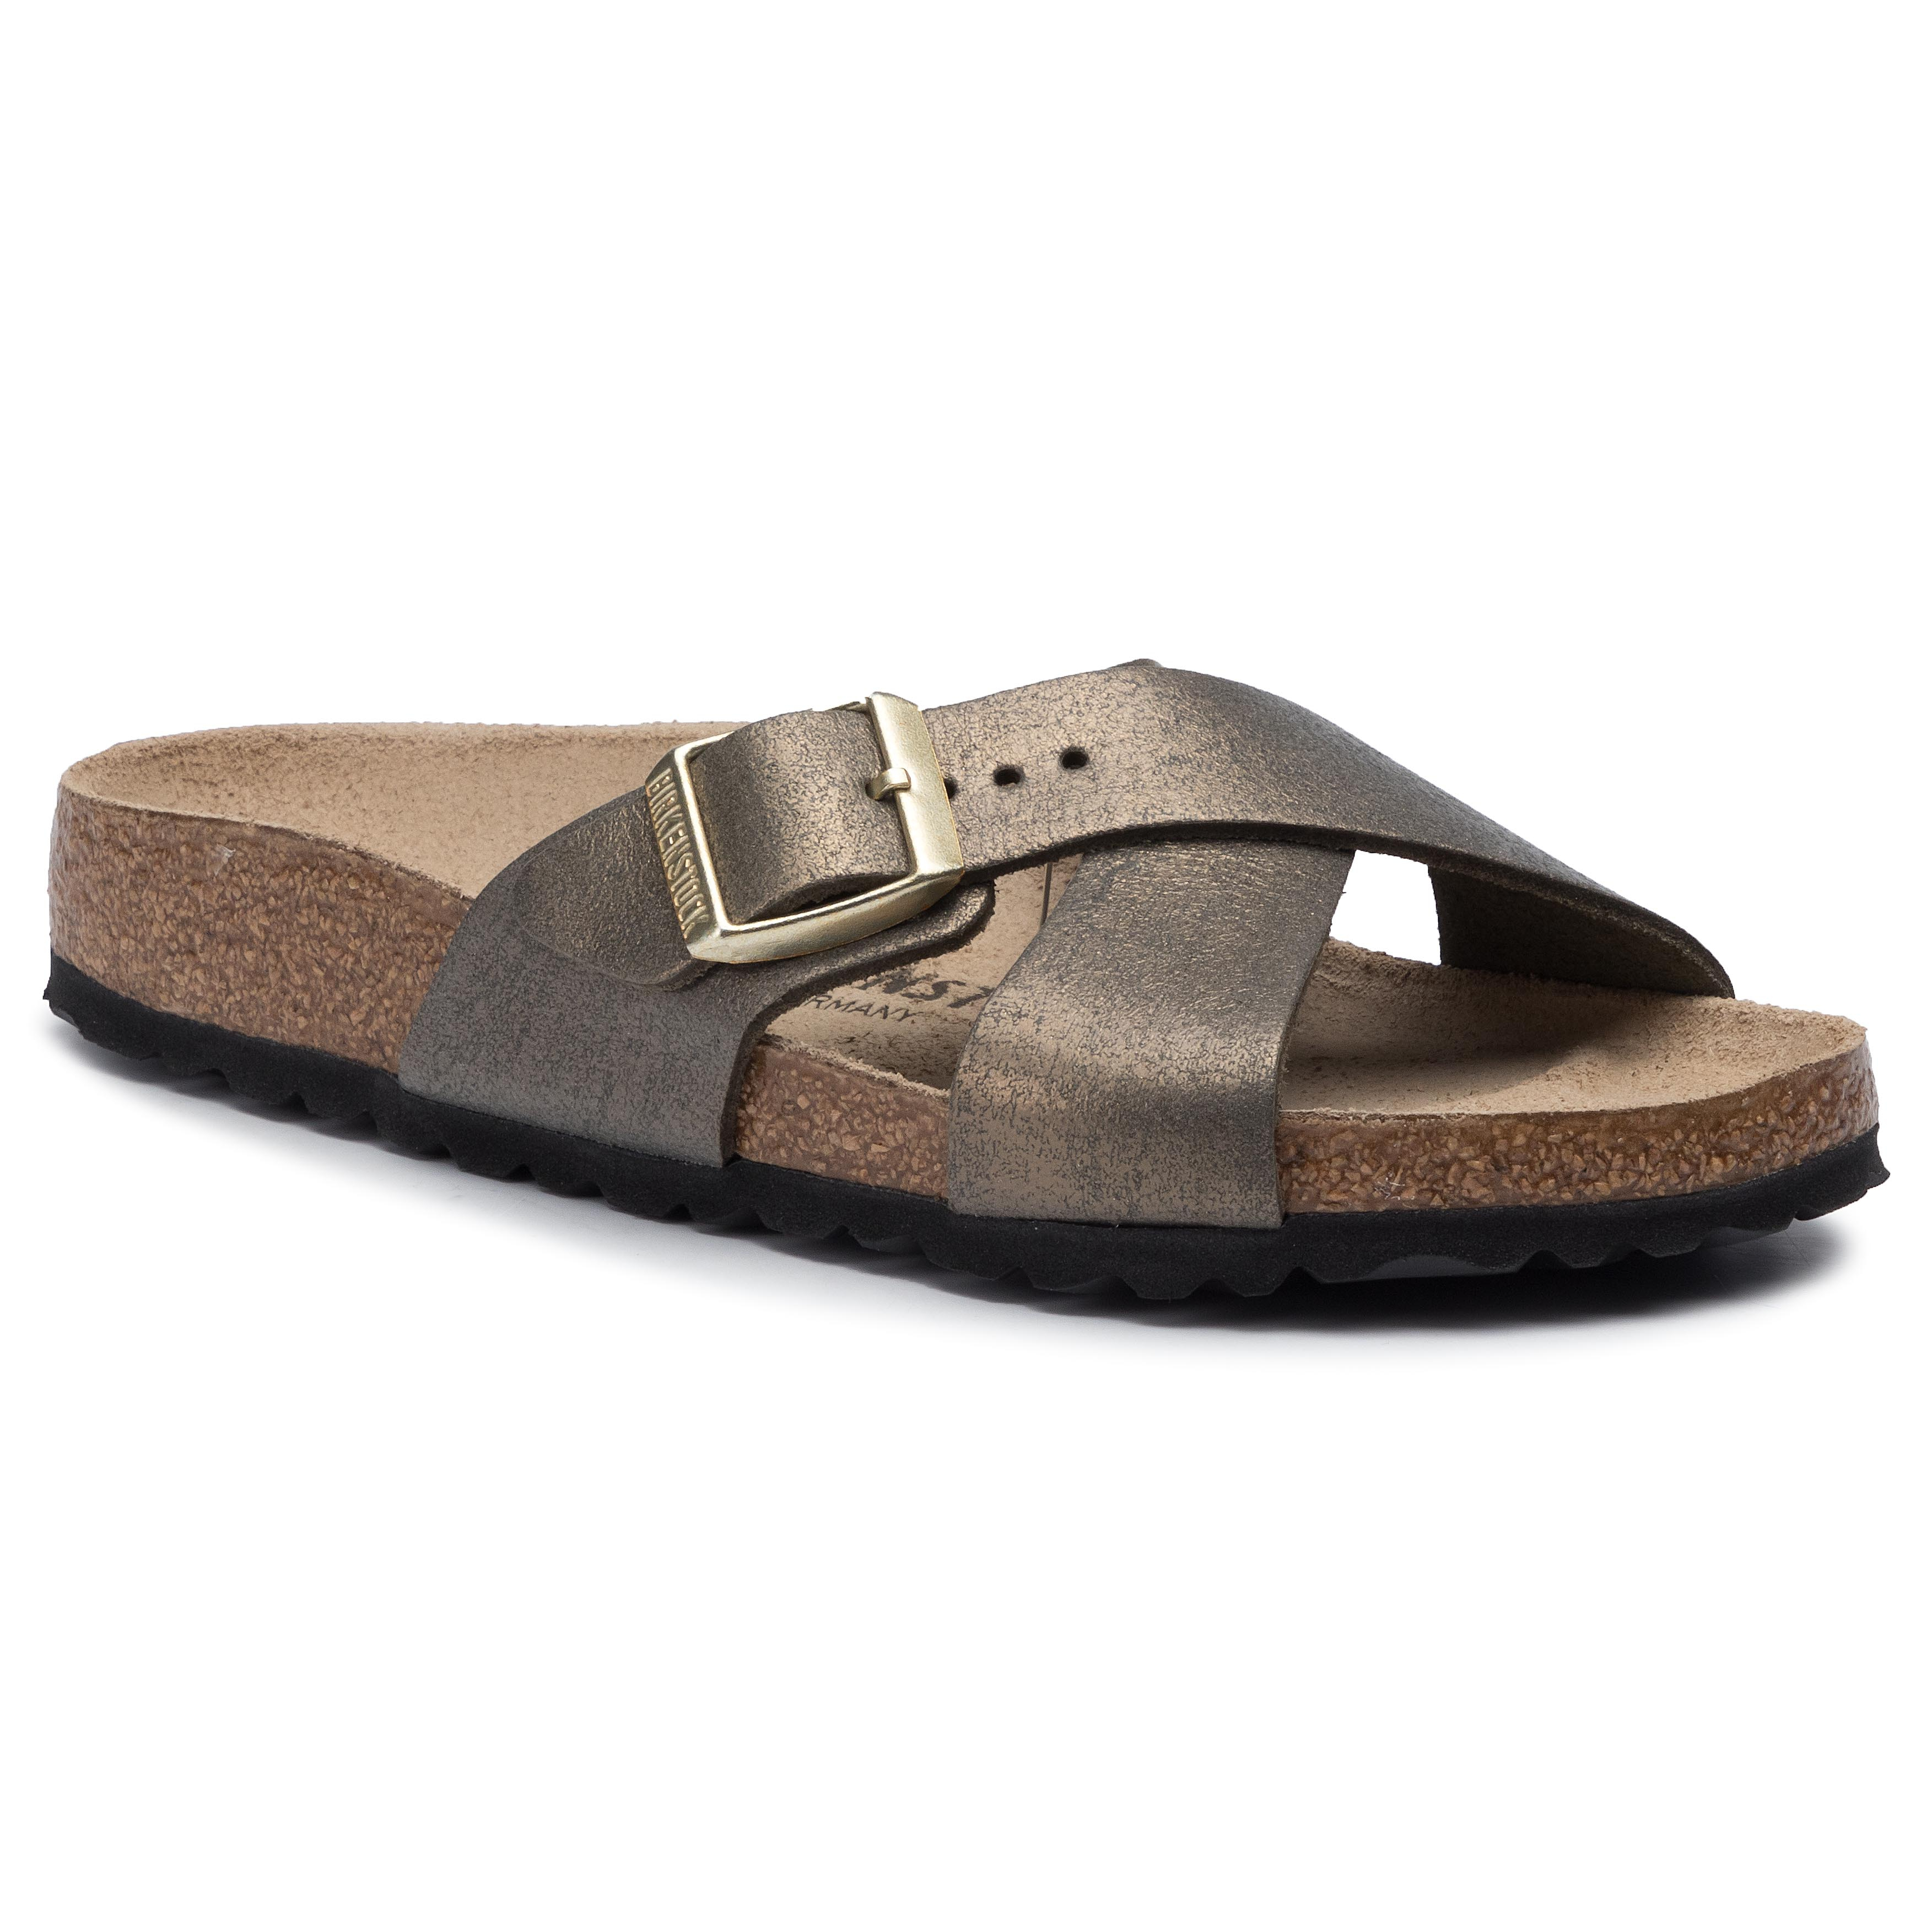 Șlapi BIRKENSTOCK - Siena 1014381 Washed Metallic Stone Gold